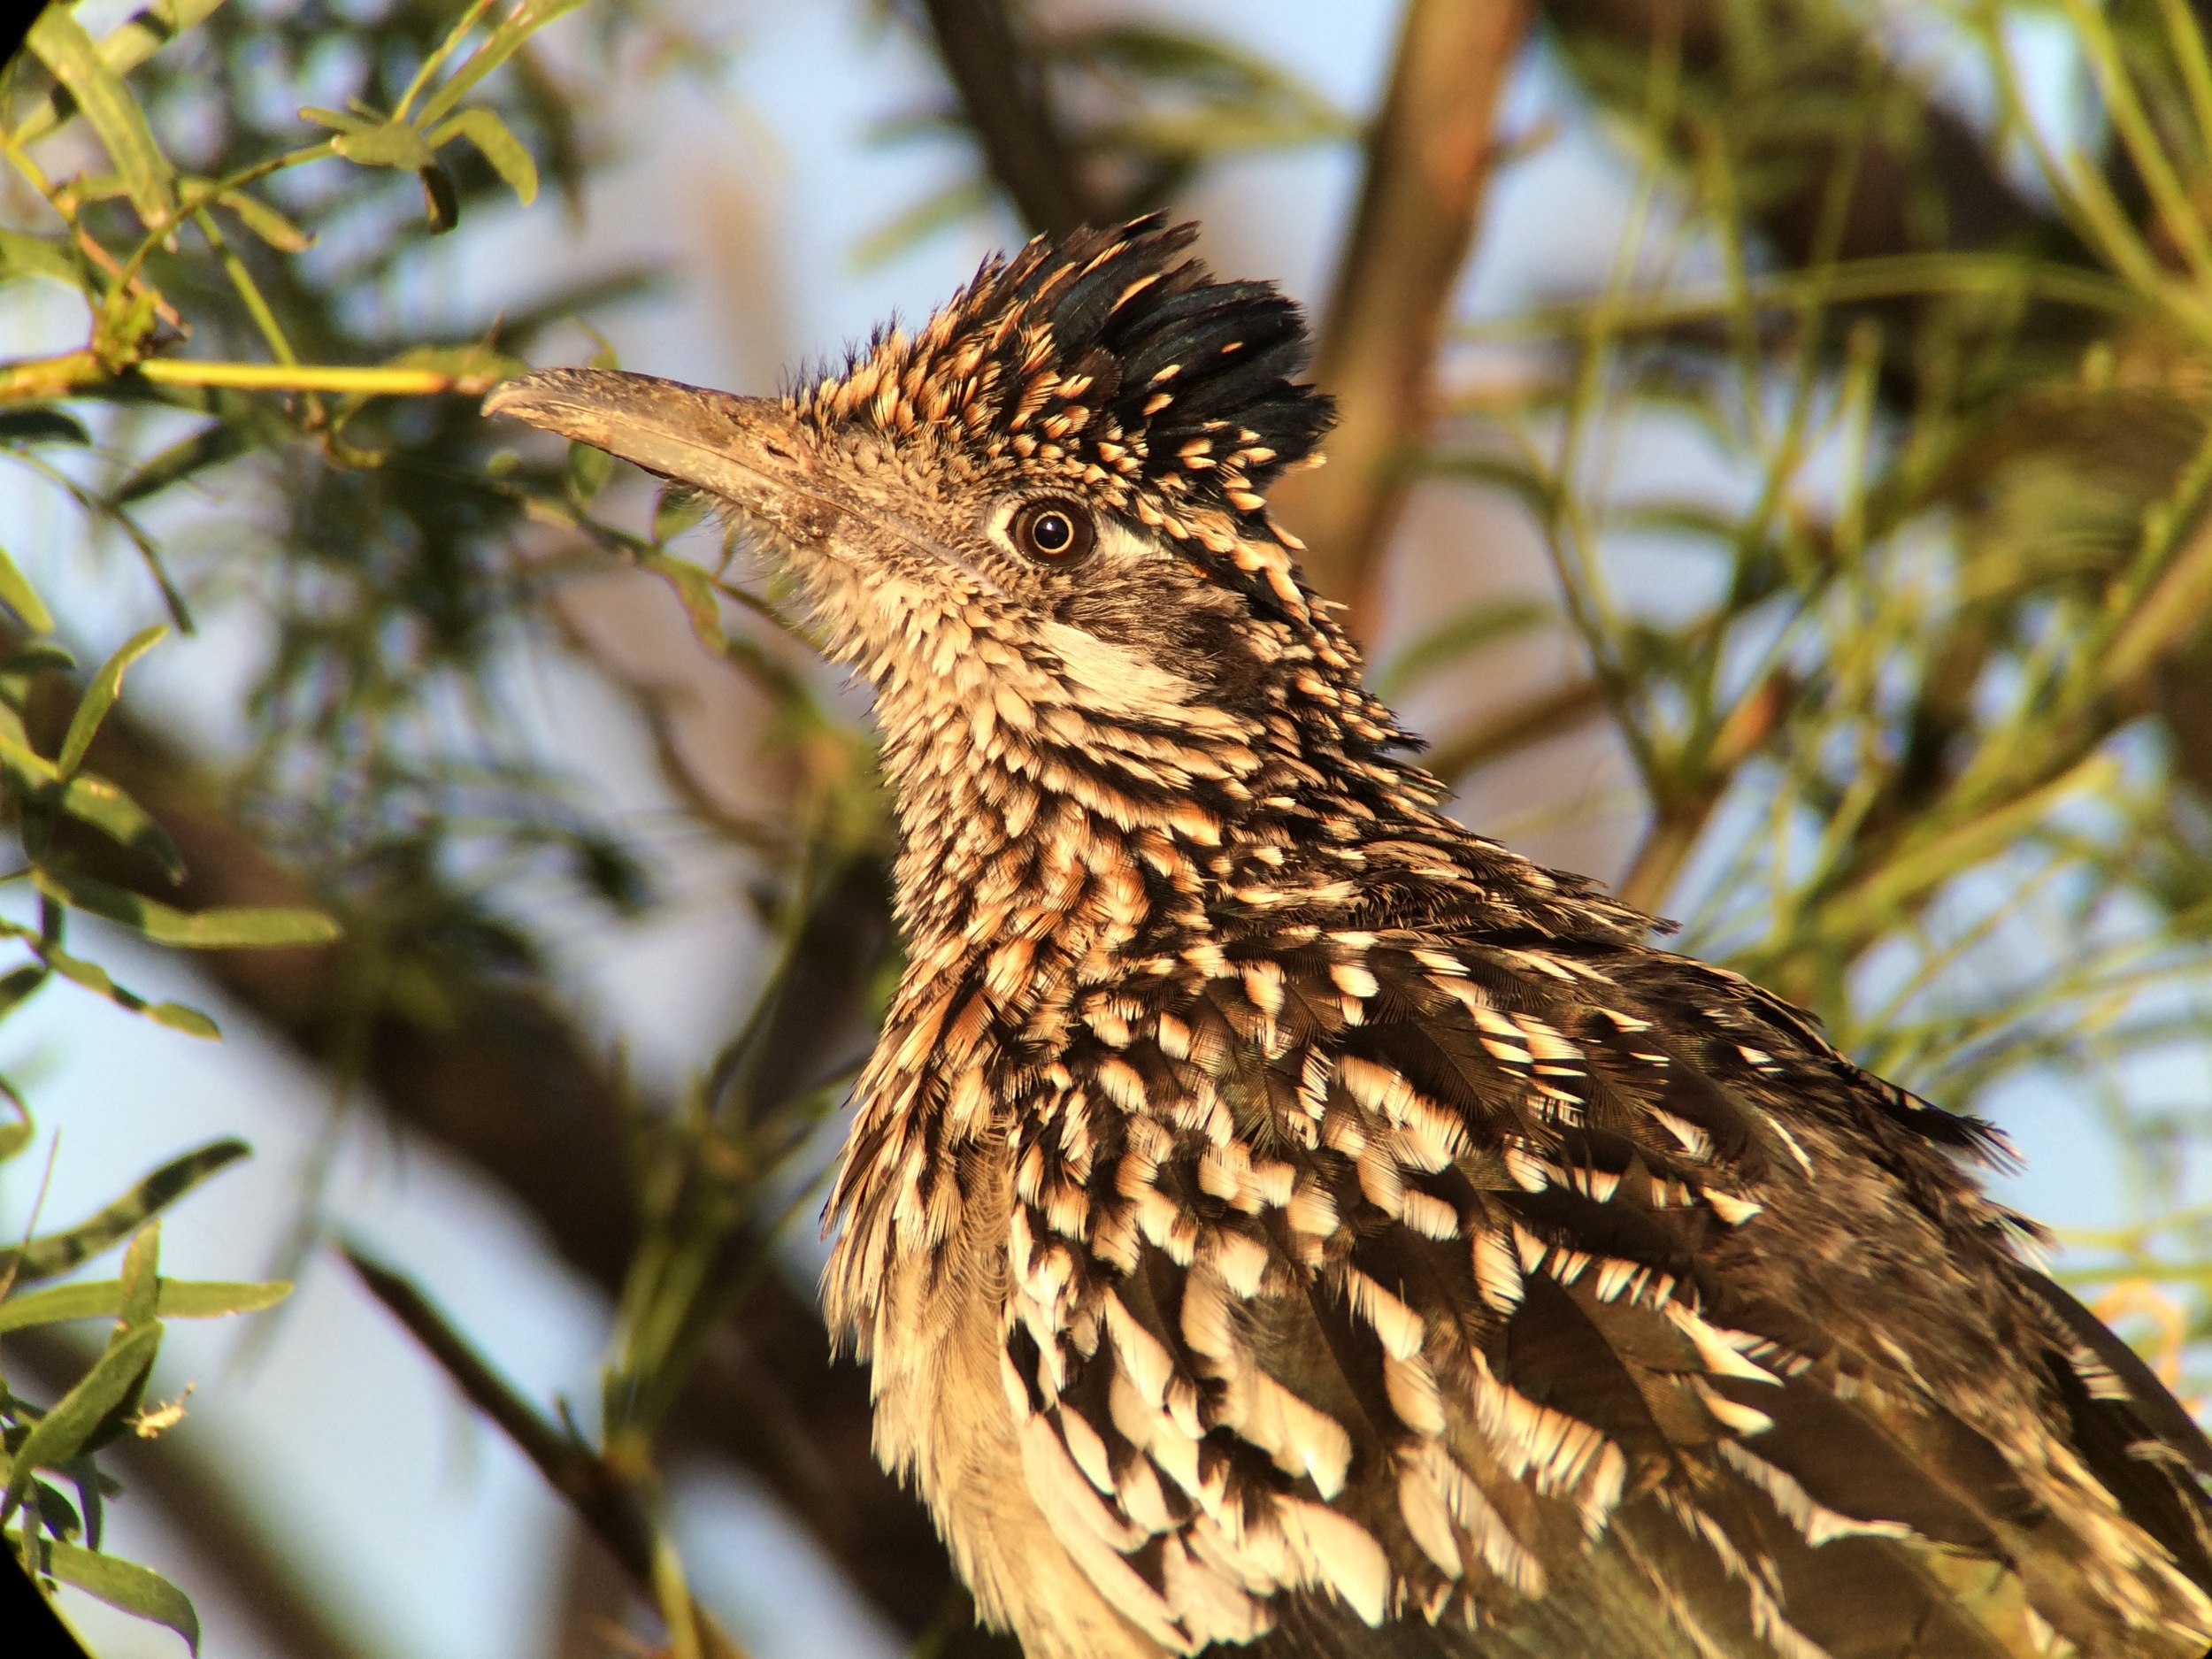 Greater roadrunner digiscoped with Swarovksi ATX 65mm scope, iPhone 5s and i5 adapter.